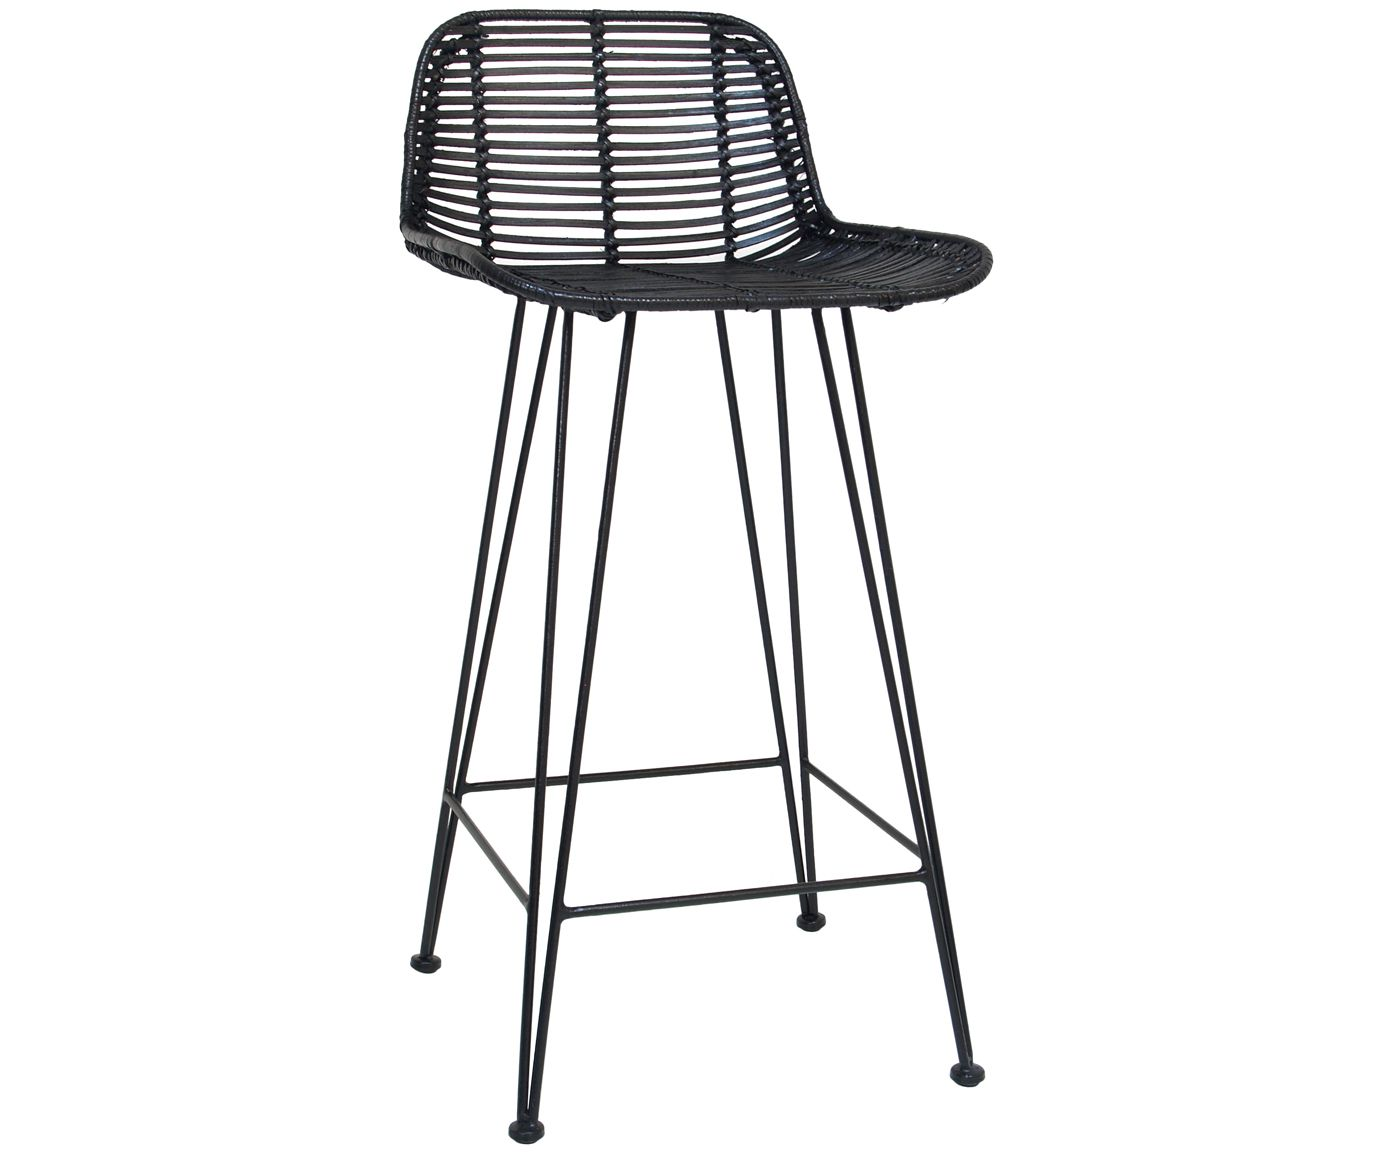 Admirable Rattan Thekenstuhl Blind Hausierer Rattan Bar Stools Stool Gmtry Best Dining Table And Chair Ideas Images Gmtryco